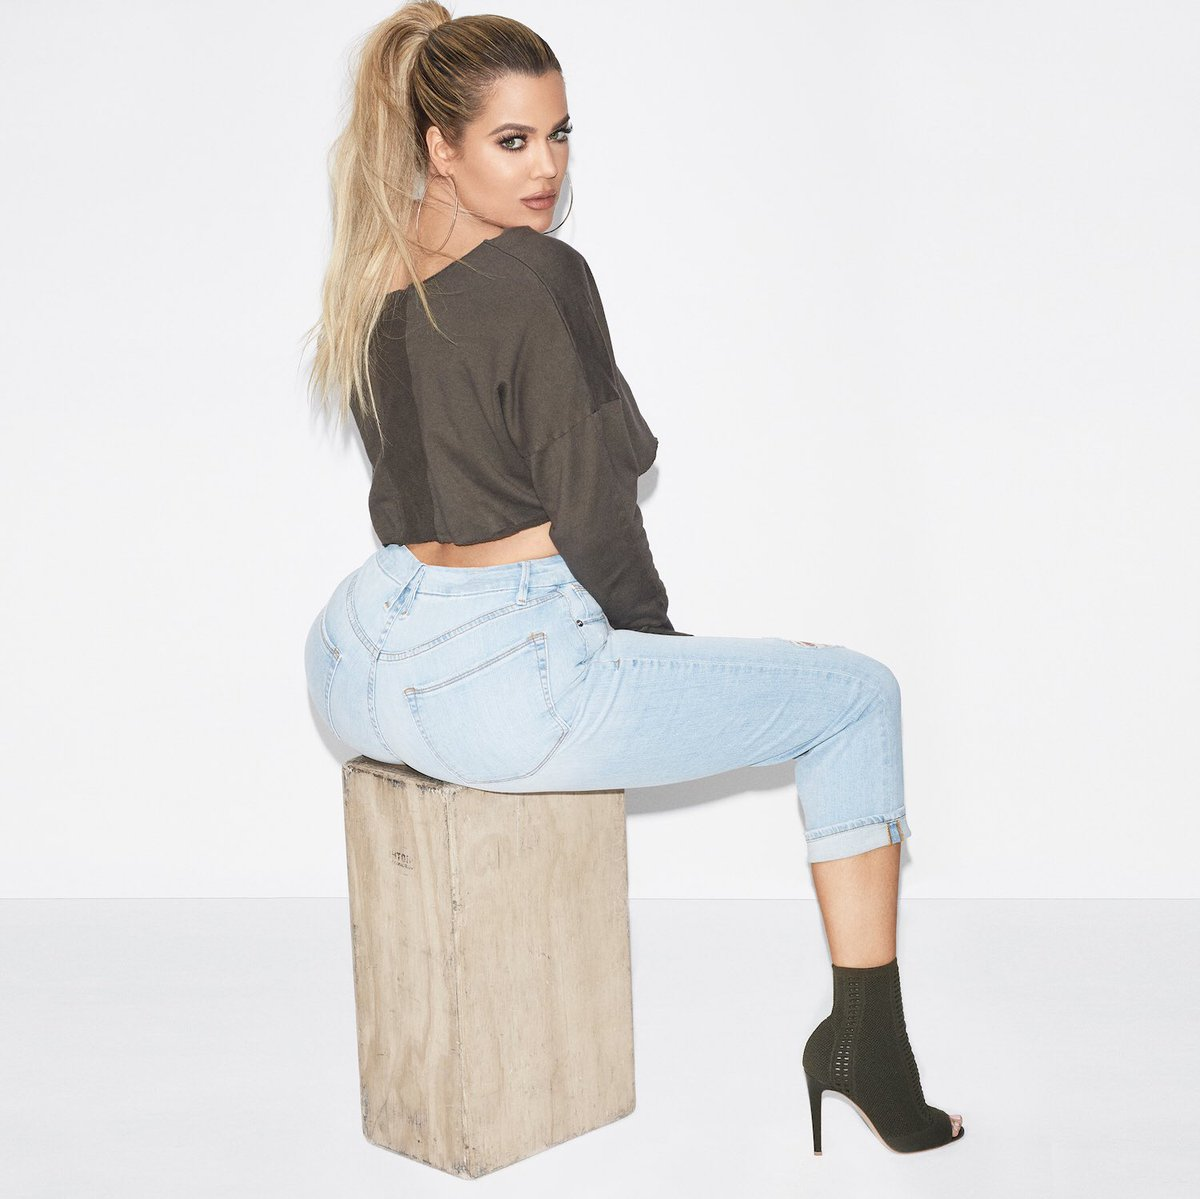 Khloe Kardashian S Good American Denim Line Launches Tomorrow At Nordstroms Online At Goodamerican Com Lipstick Alley